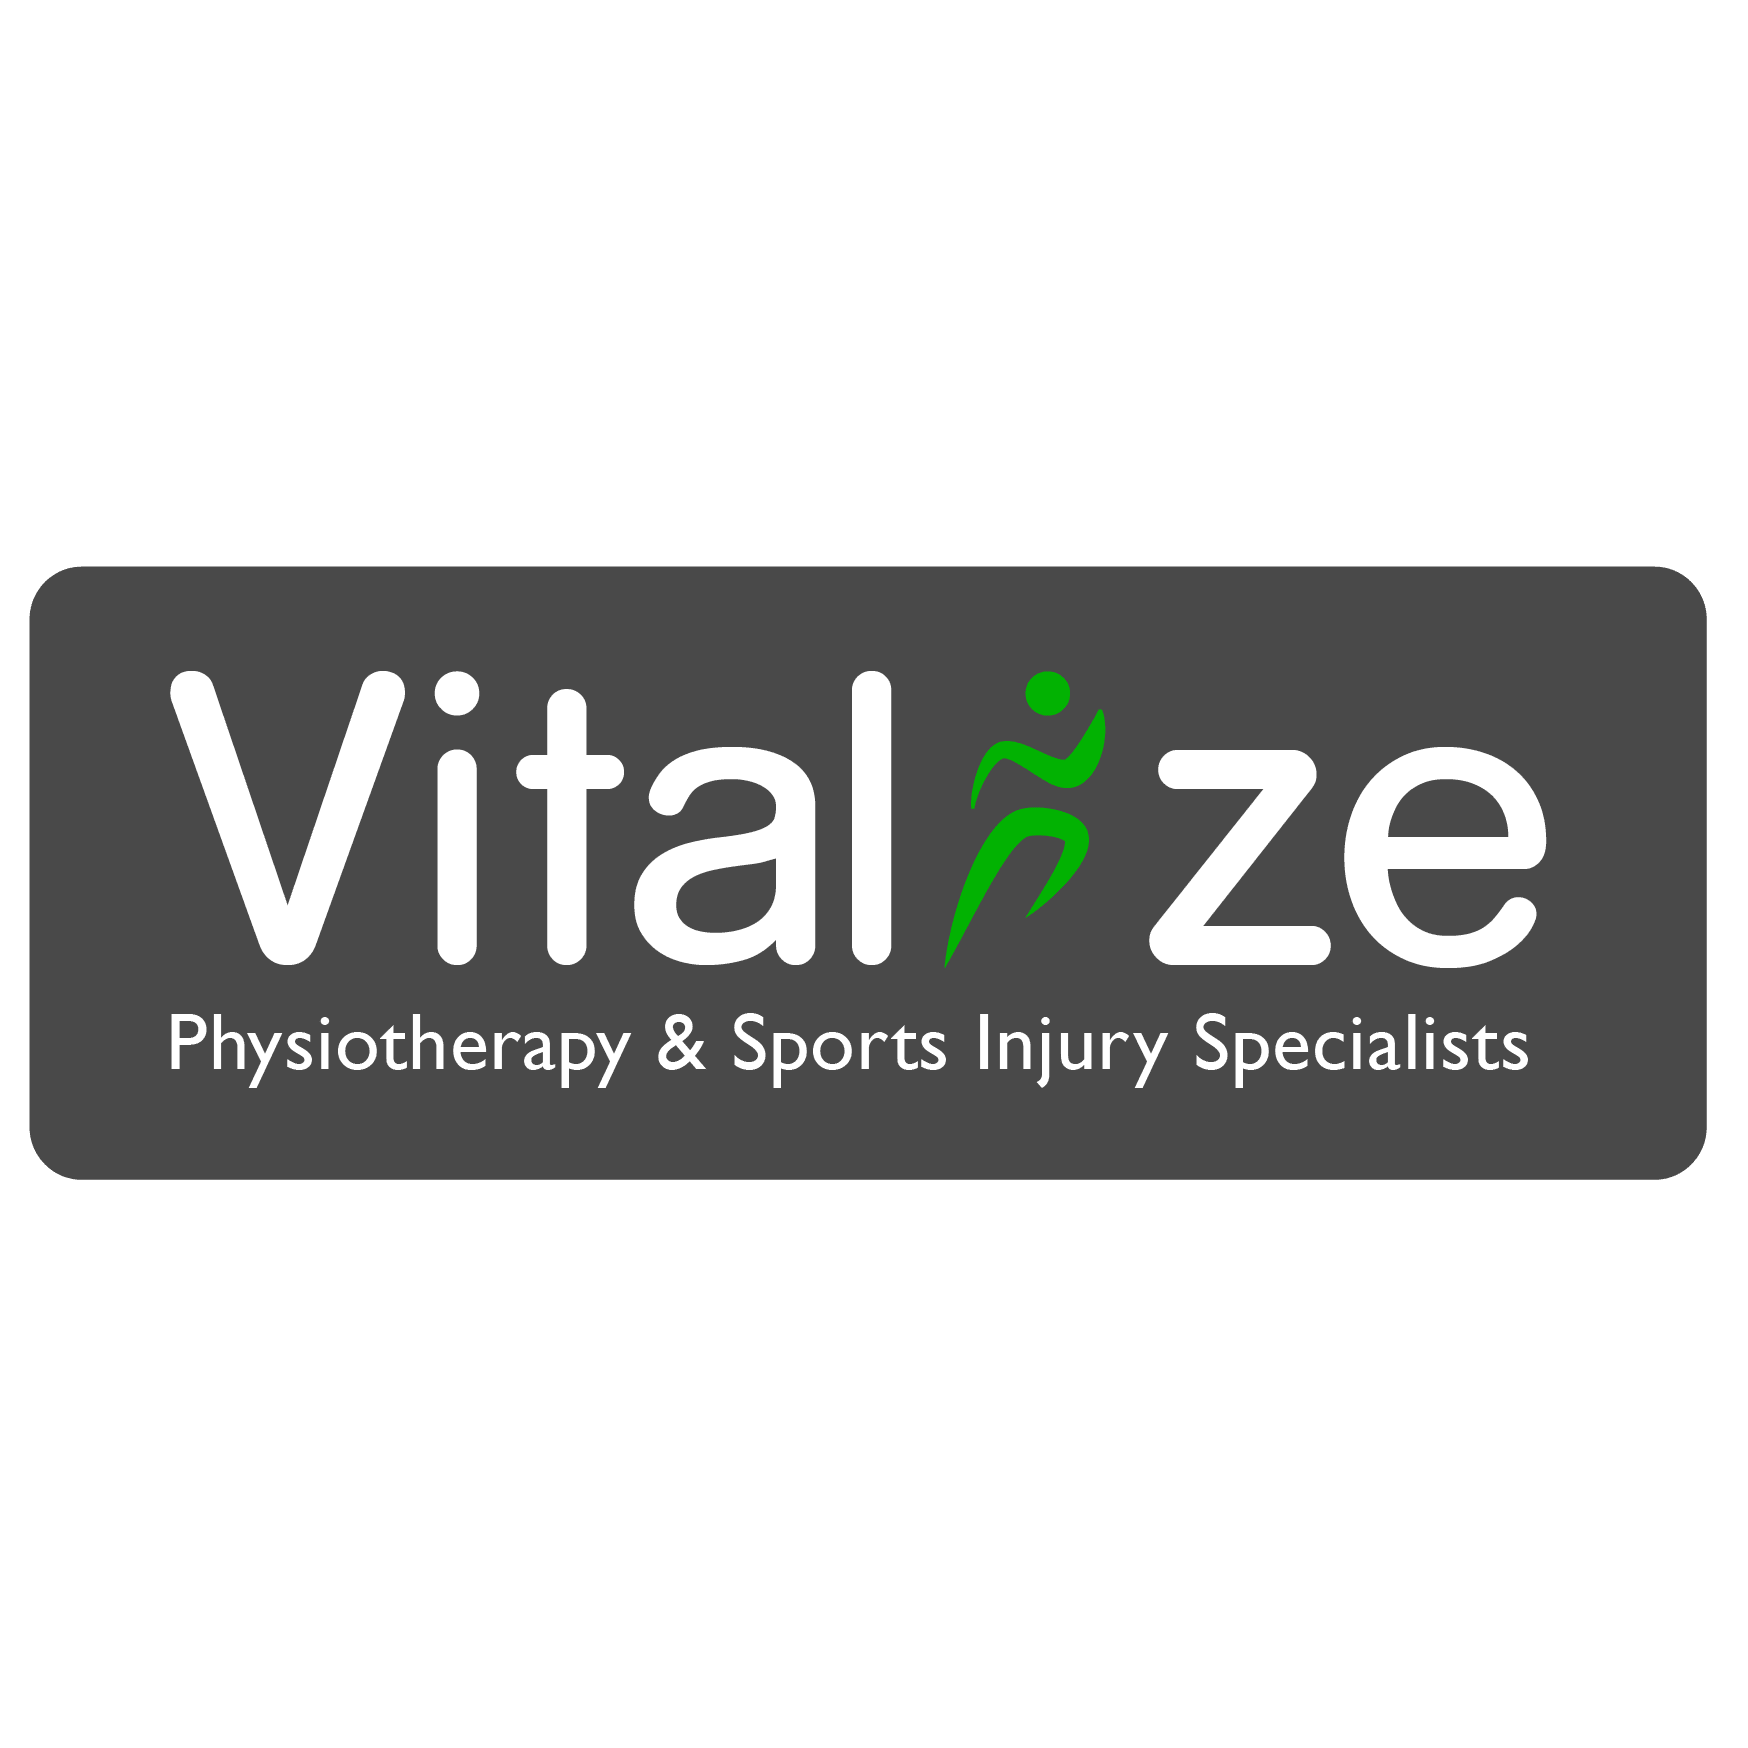 Vitalize Physiotherapy & Sports Injury Specialists - Ashby-De-La-Zouch, Leicestershire LE65 2UG - 07305 050887 | ShowMeLocal.com